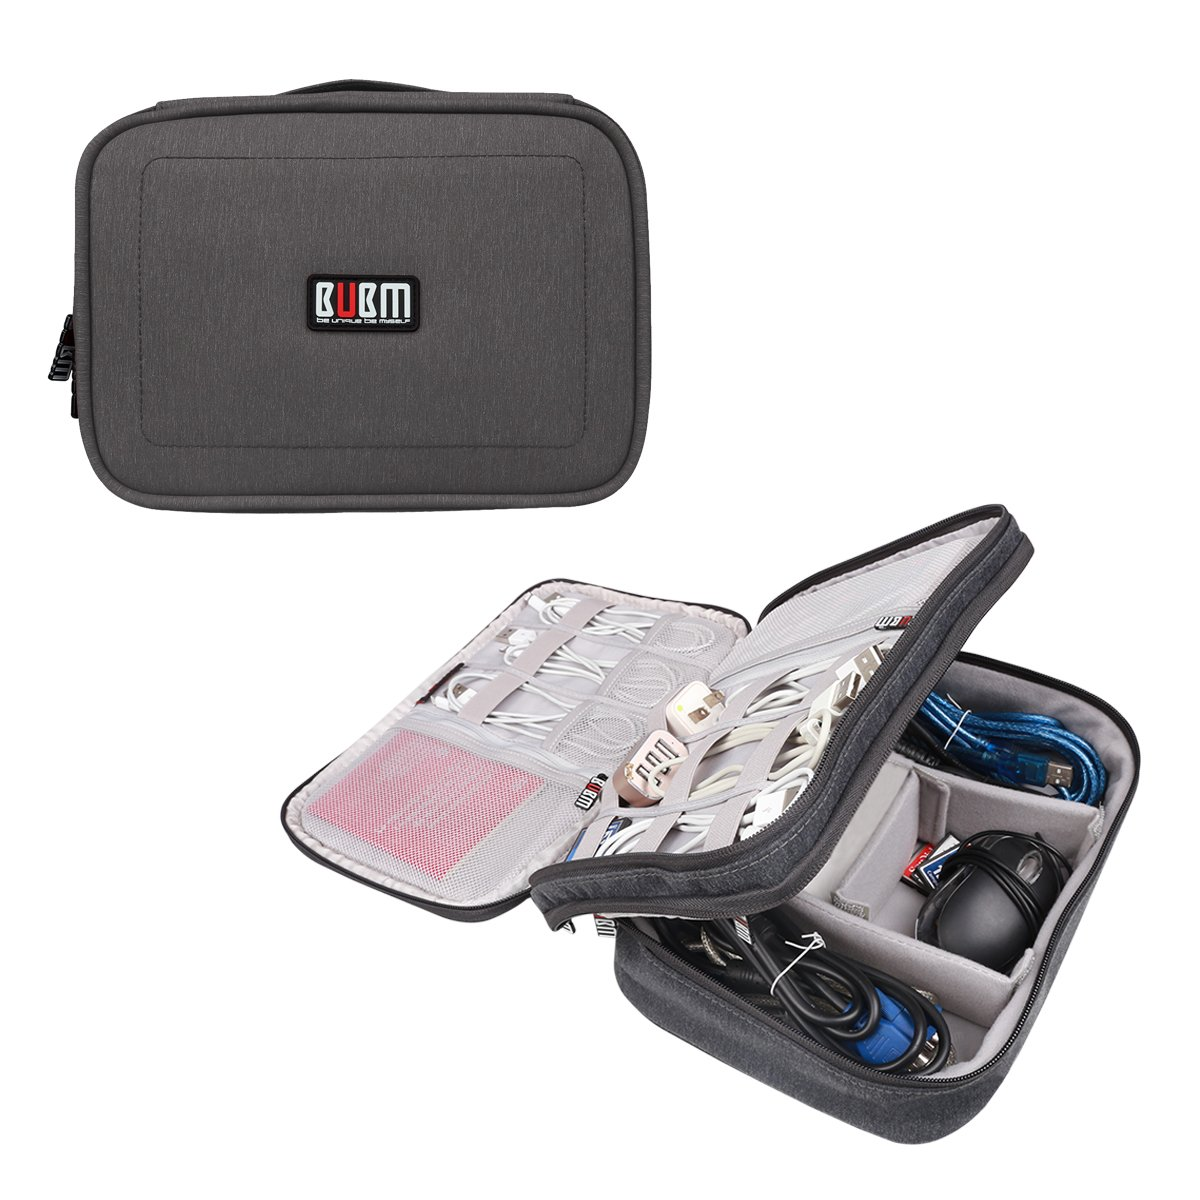 BUBM Double Layers Travel Universal Cable Organizer Electronics Accessories Bag for Cables,External Flash Drive,Mouse,Memory Card,Power Bank (Medium, Black)